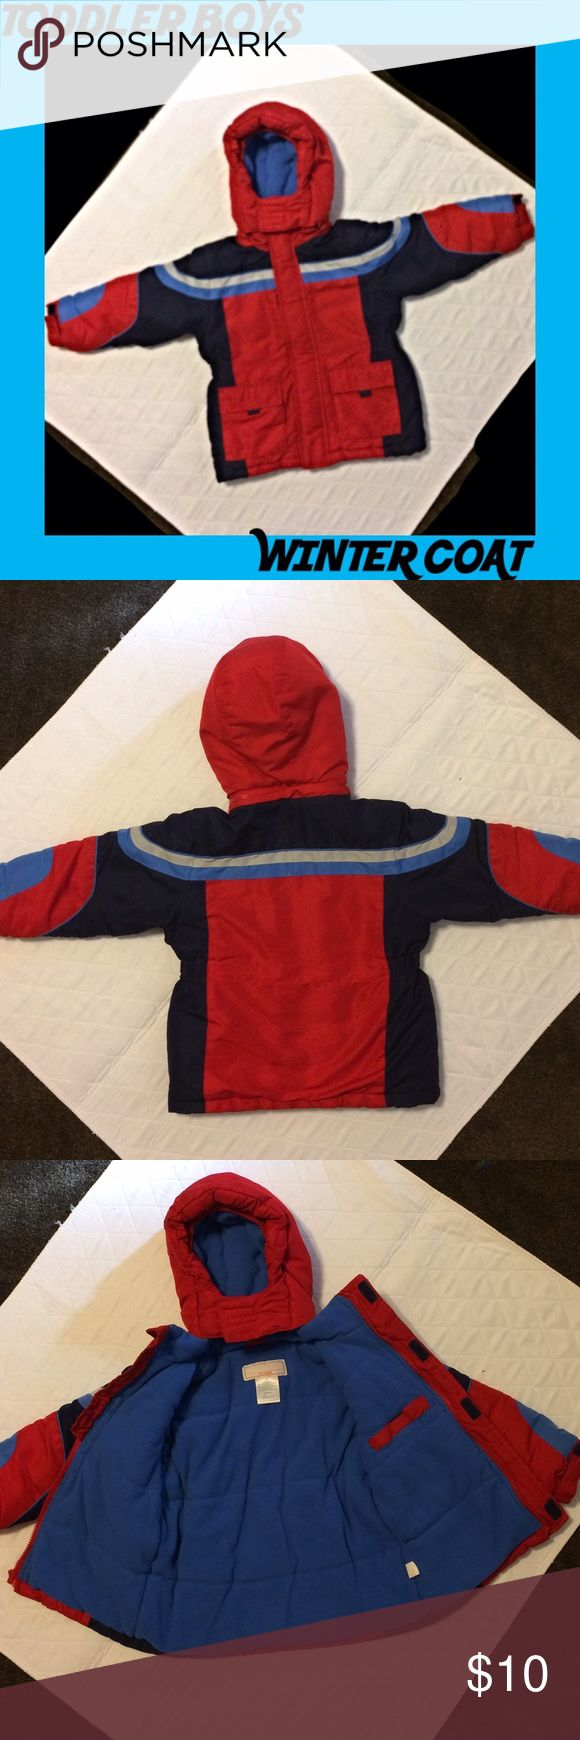 """✨Toddler Boy Winter Coat Very good used condition. Hood is detachable. I cannot remember what brand this coat is. The tag is only a label that says """"my name"""" where you can write your child's name. Looking up the RN# it could be made by S. Rothschild. 🚫TRADES Jackets & Coats"""